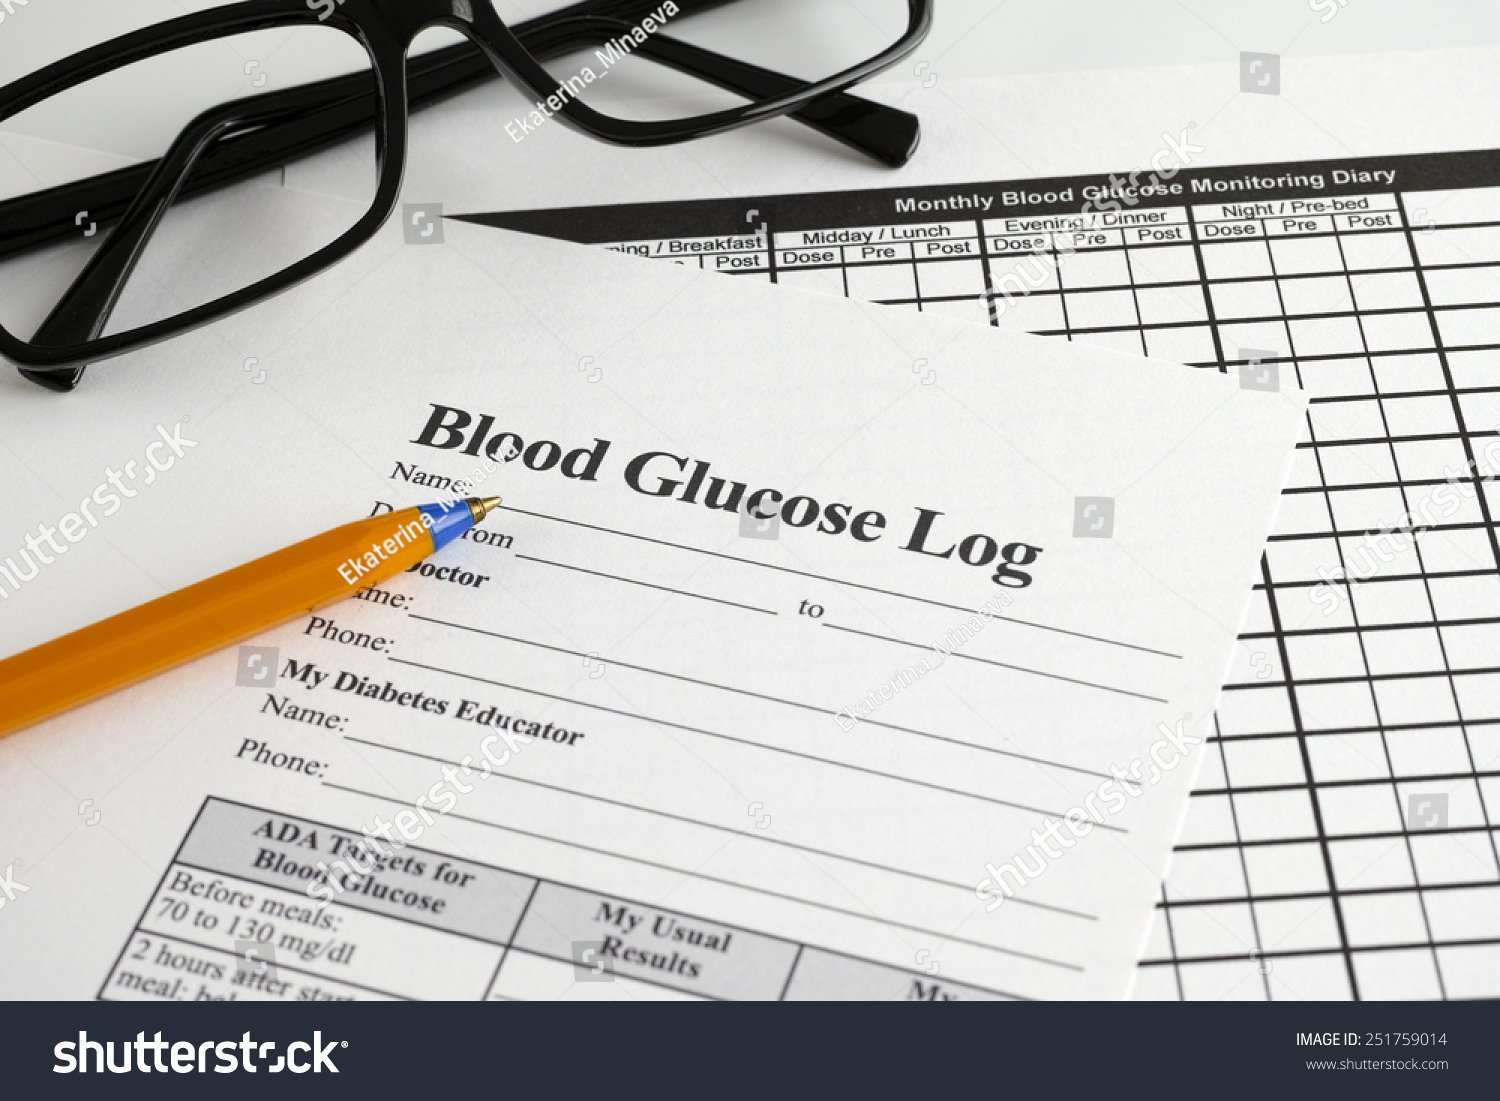 Blood Sugar Monitoring Log Unique Blood Glucose Log Monthly Blood Glucose Stock